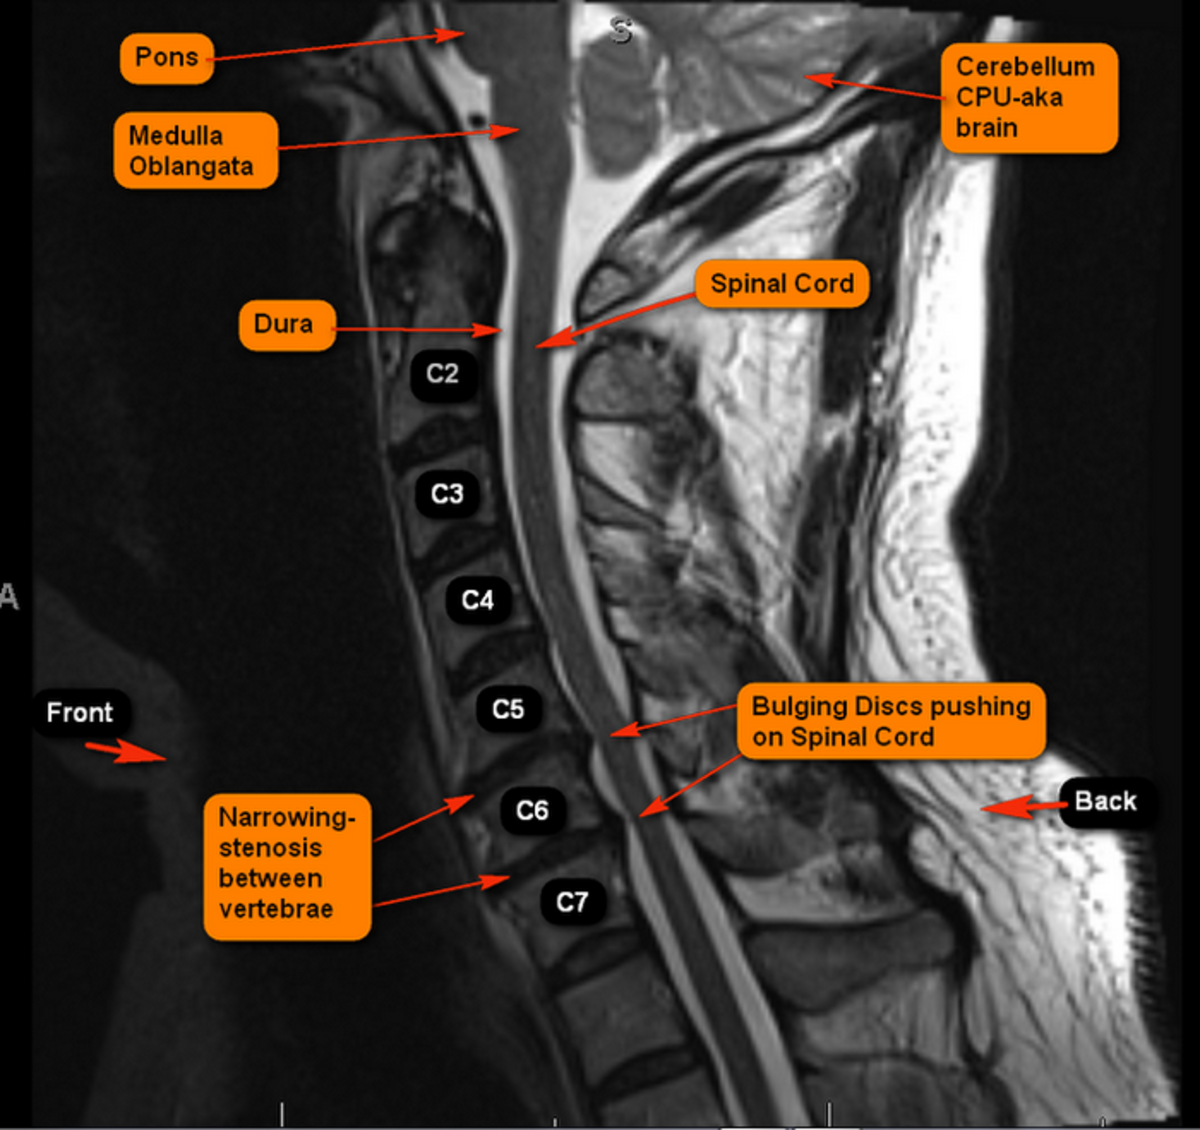 MRI Showing Spinal Landmarks, Narrowing, and Bulging of the Vertebrae